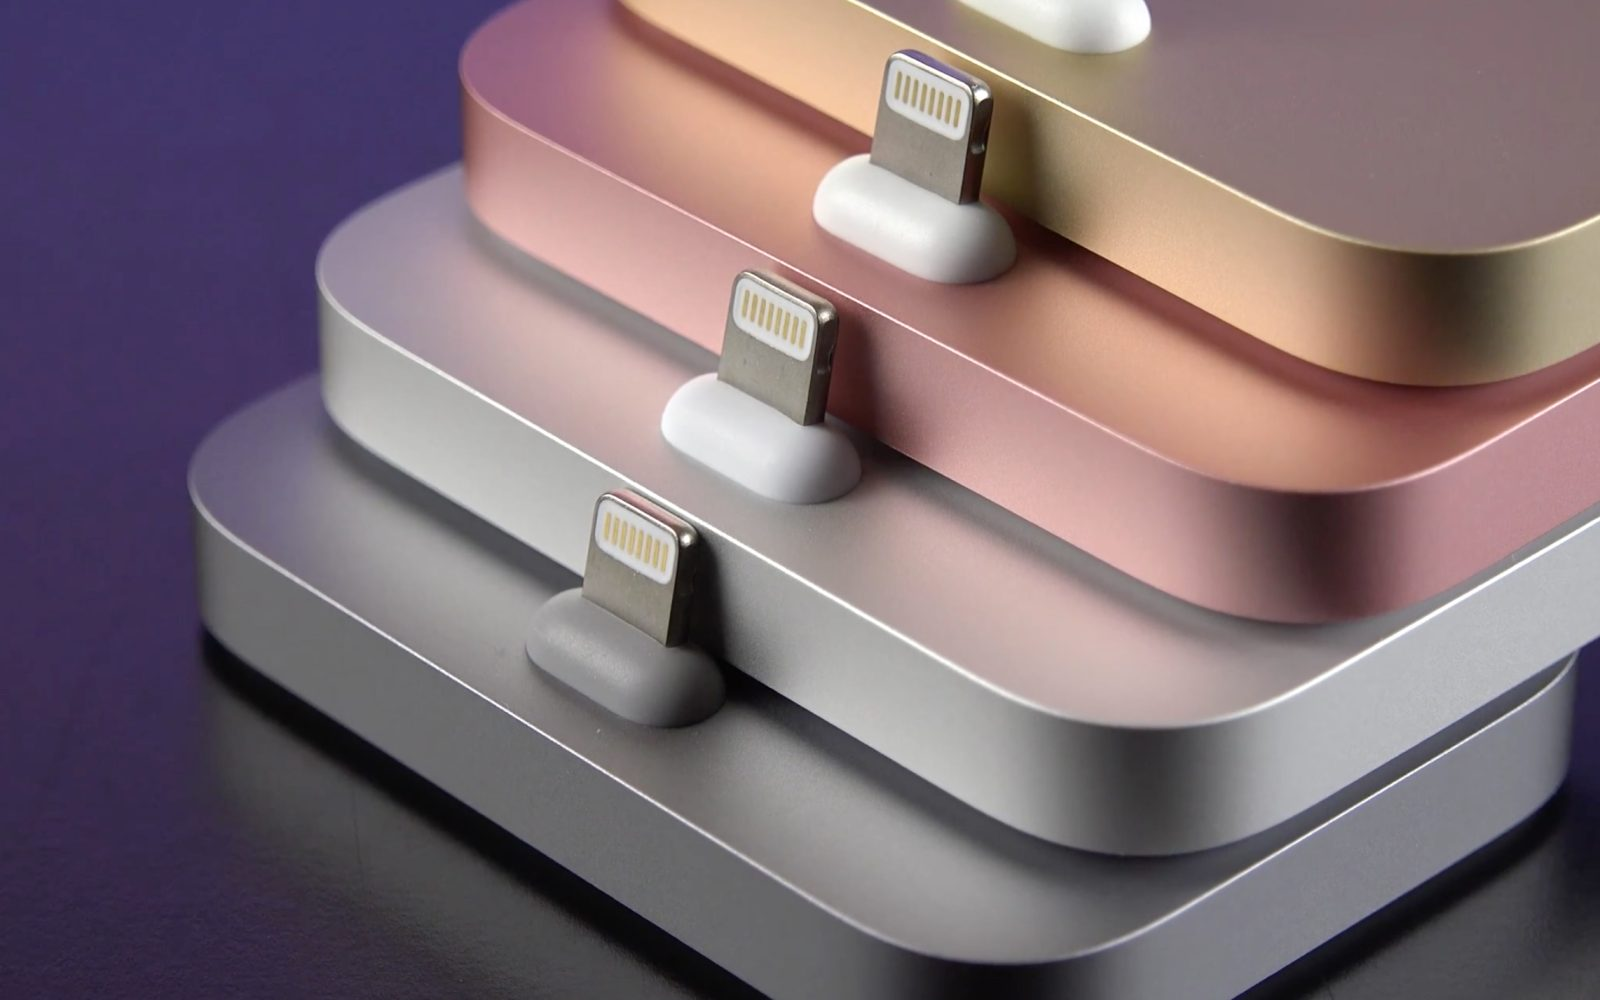 Video: All four colors of Apple's new iPhone Lightning Dock reviewed